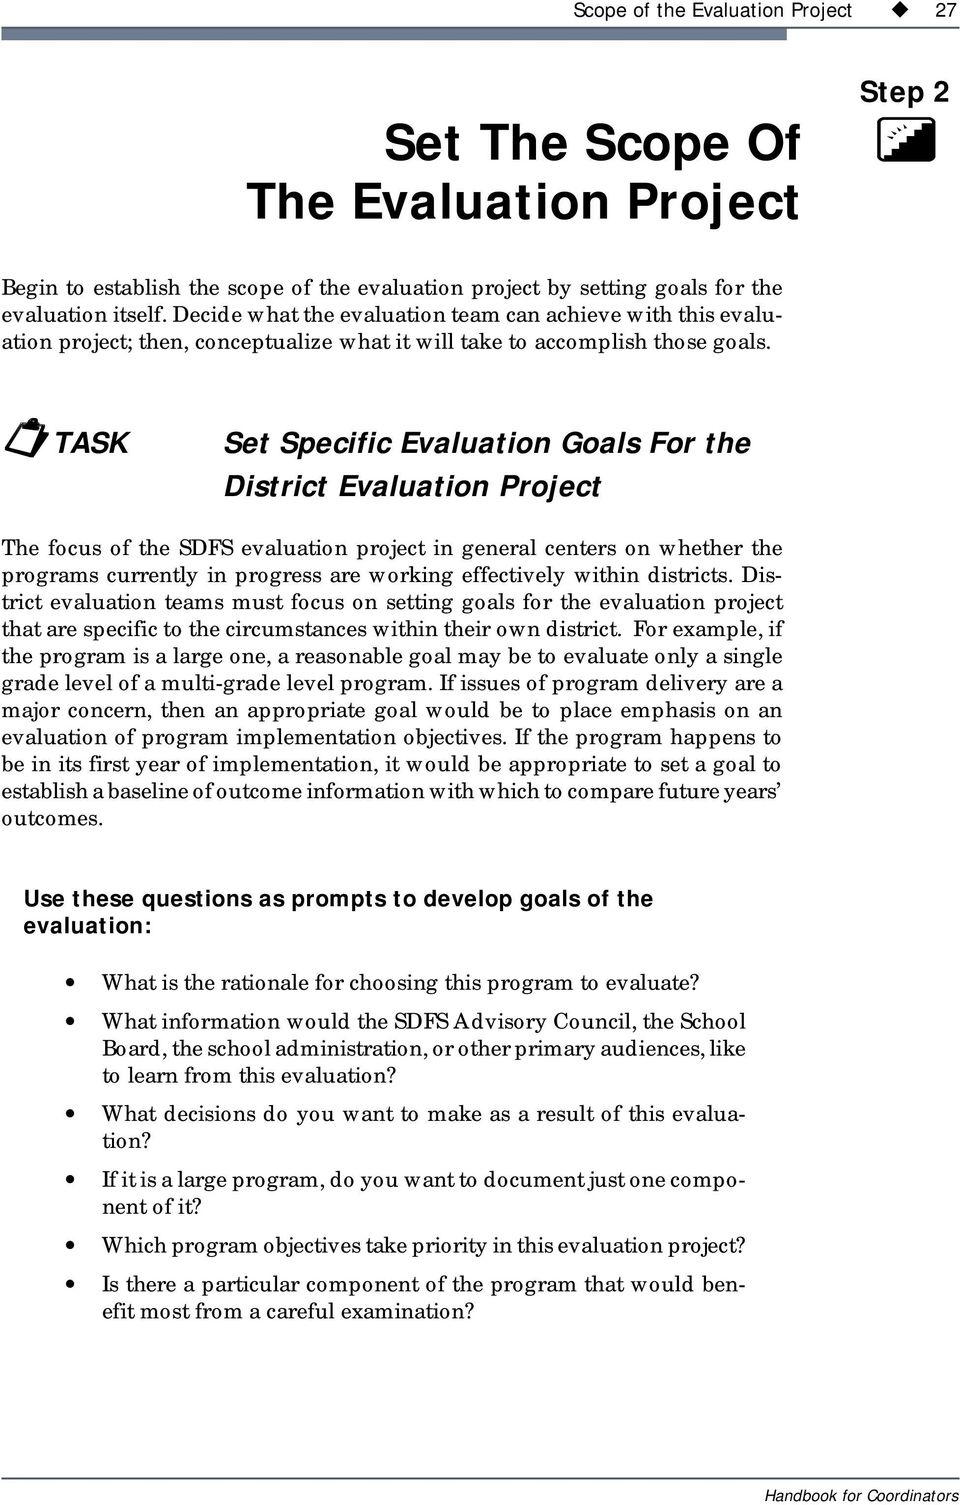 !task Set Specific Evaluation Goals For the District Evaluation Project The focus of the SDFS evaluation project in general centers on whether the programs currently in progress are working